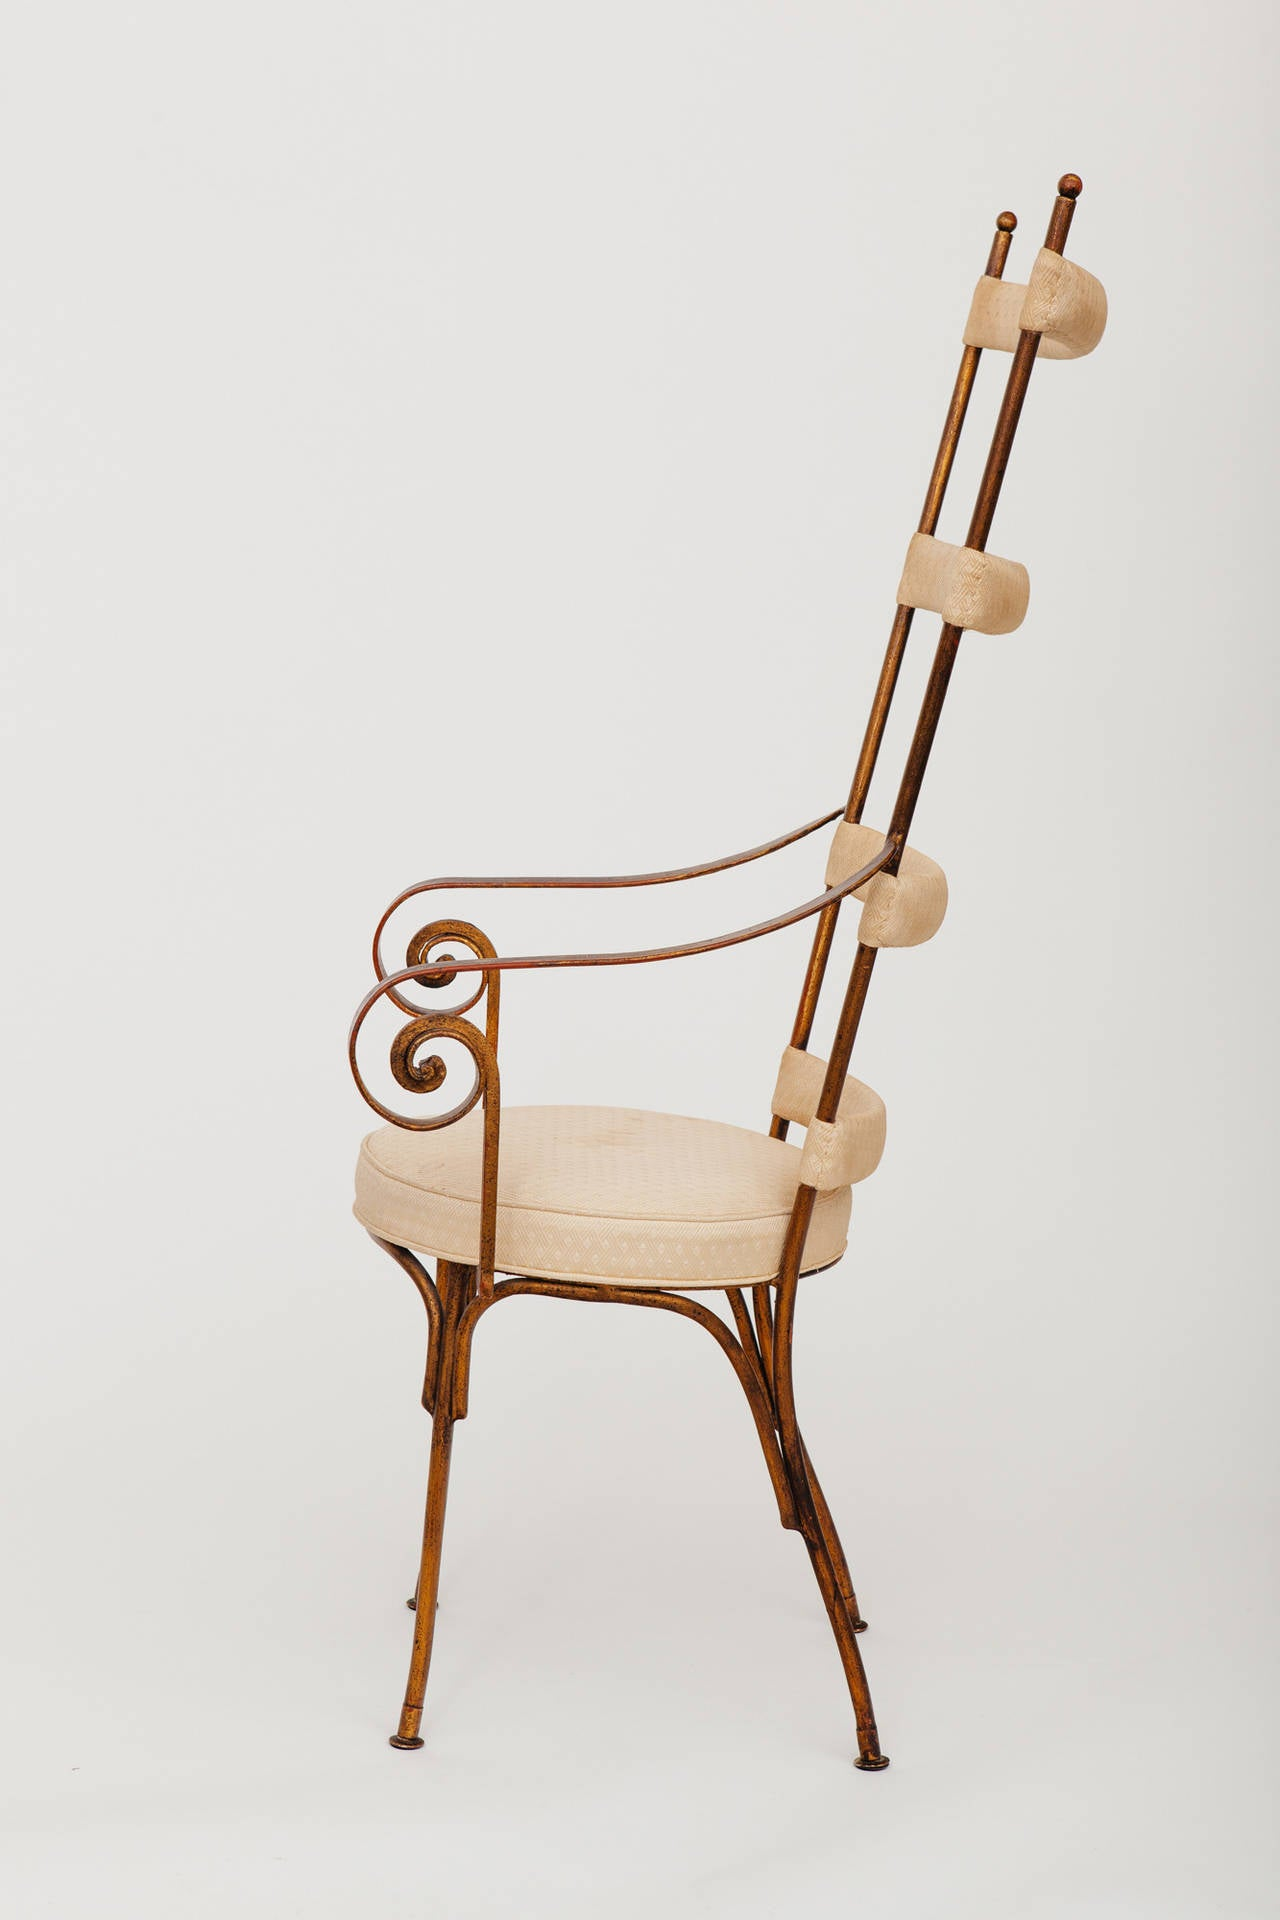 Hand-Crafted Italian Gilt Metal Ladder Back Chair, circa 1950s For Sale